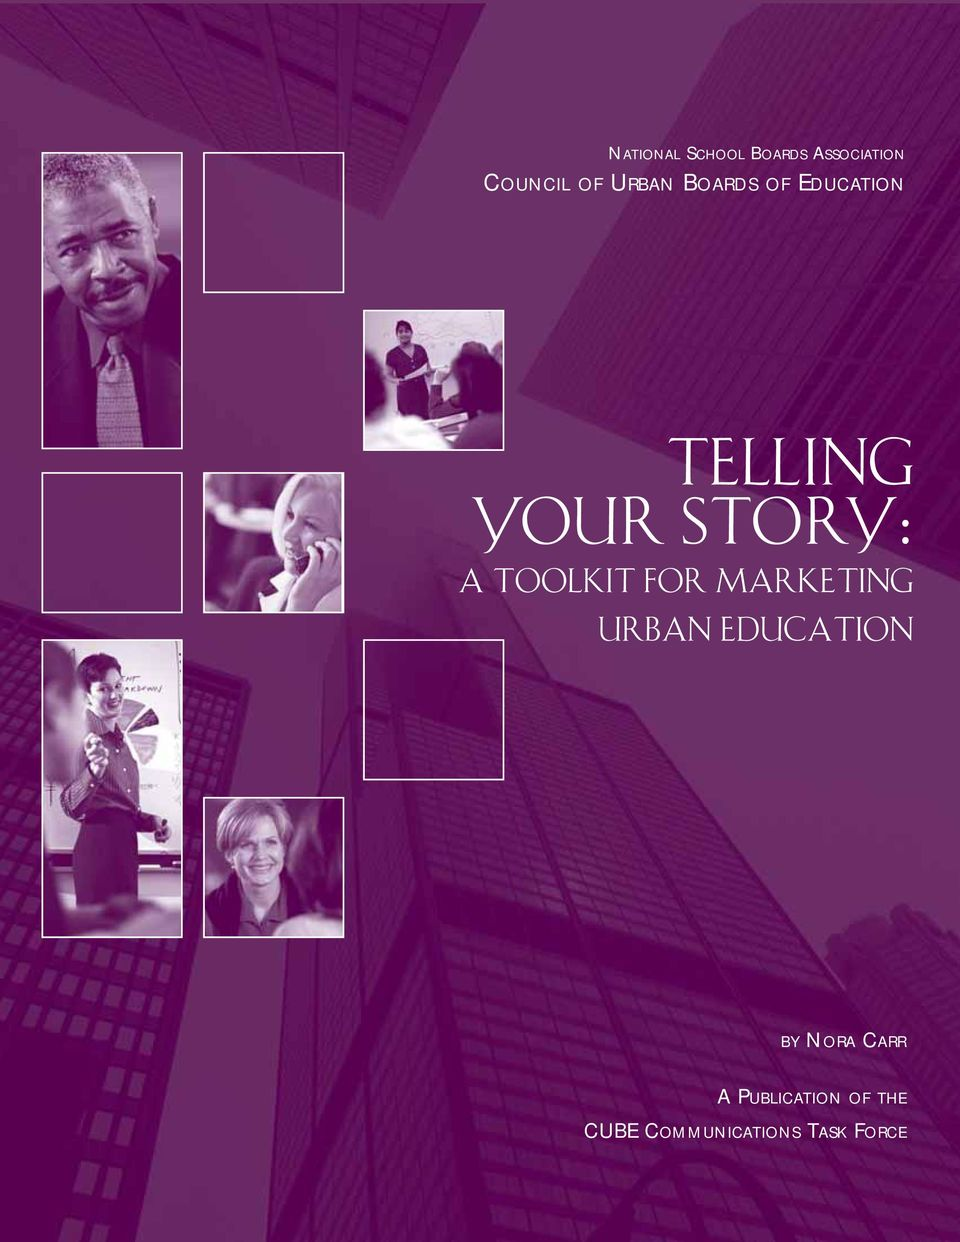 TOOLKIT FOR MARKETING URBAN EDUCATION BY NORA